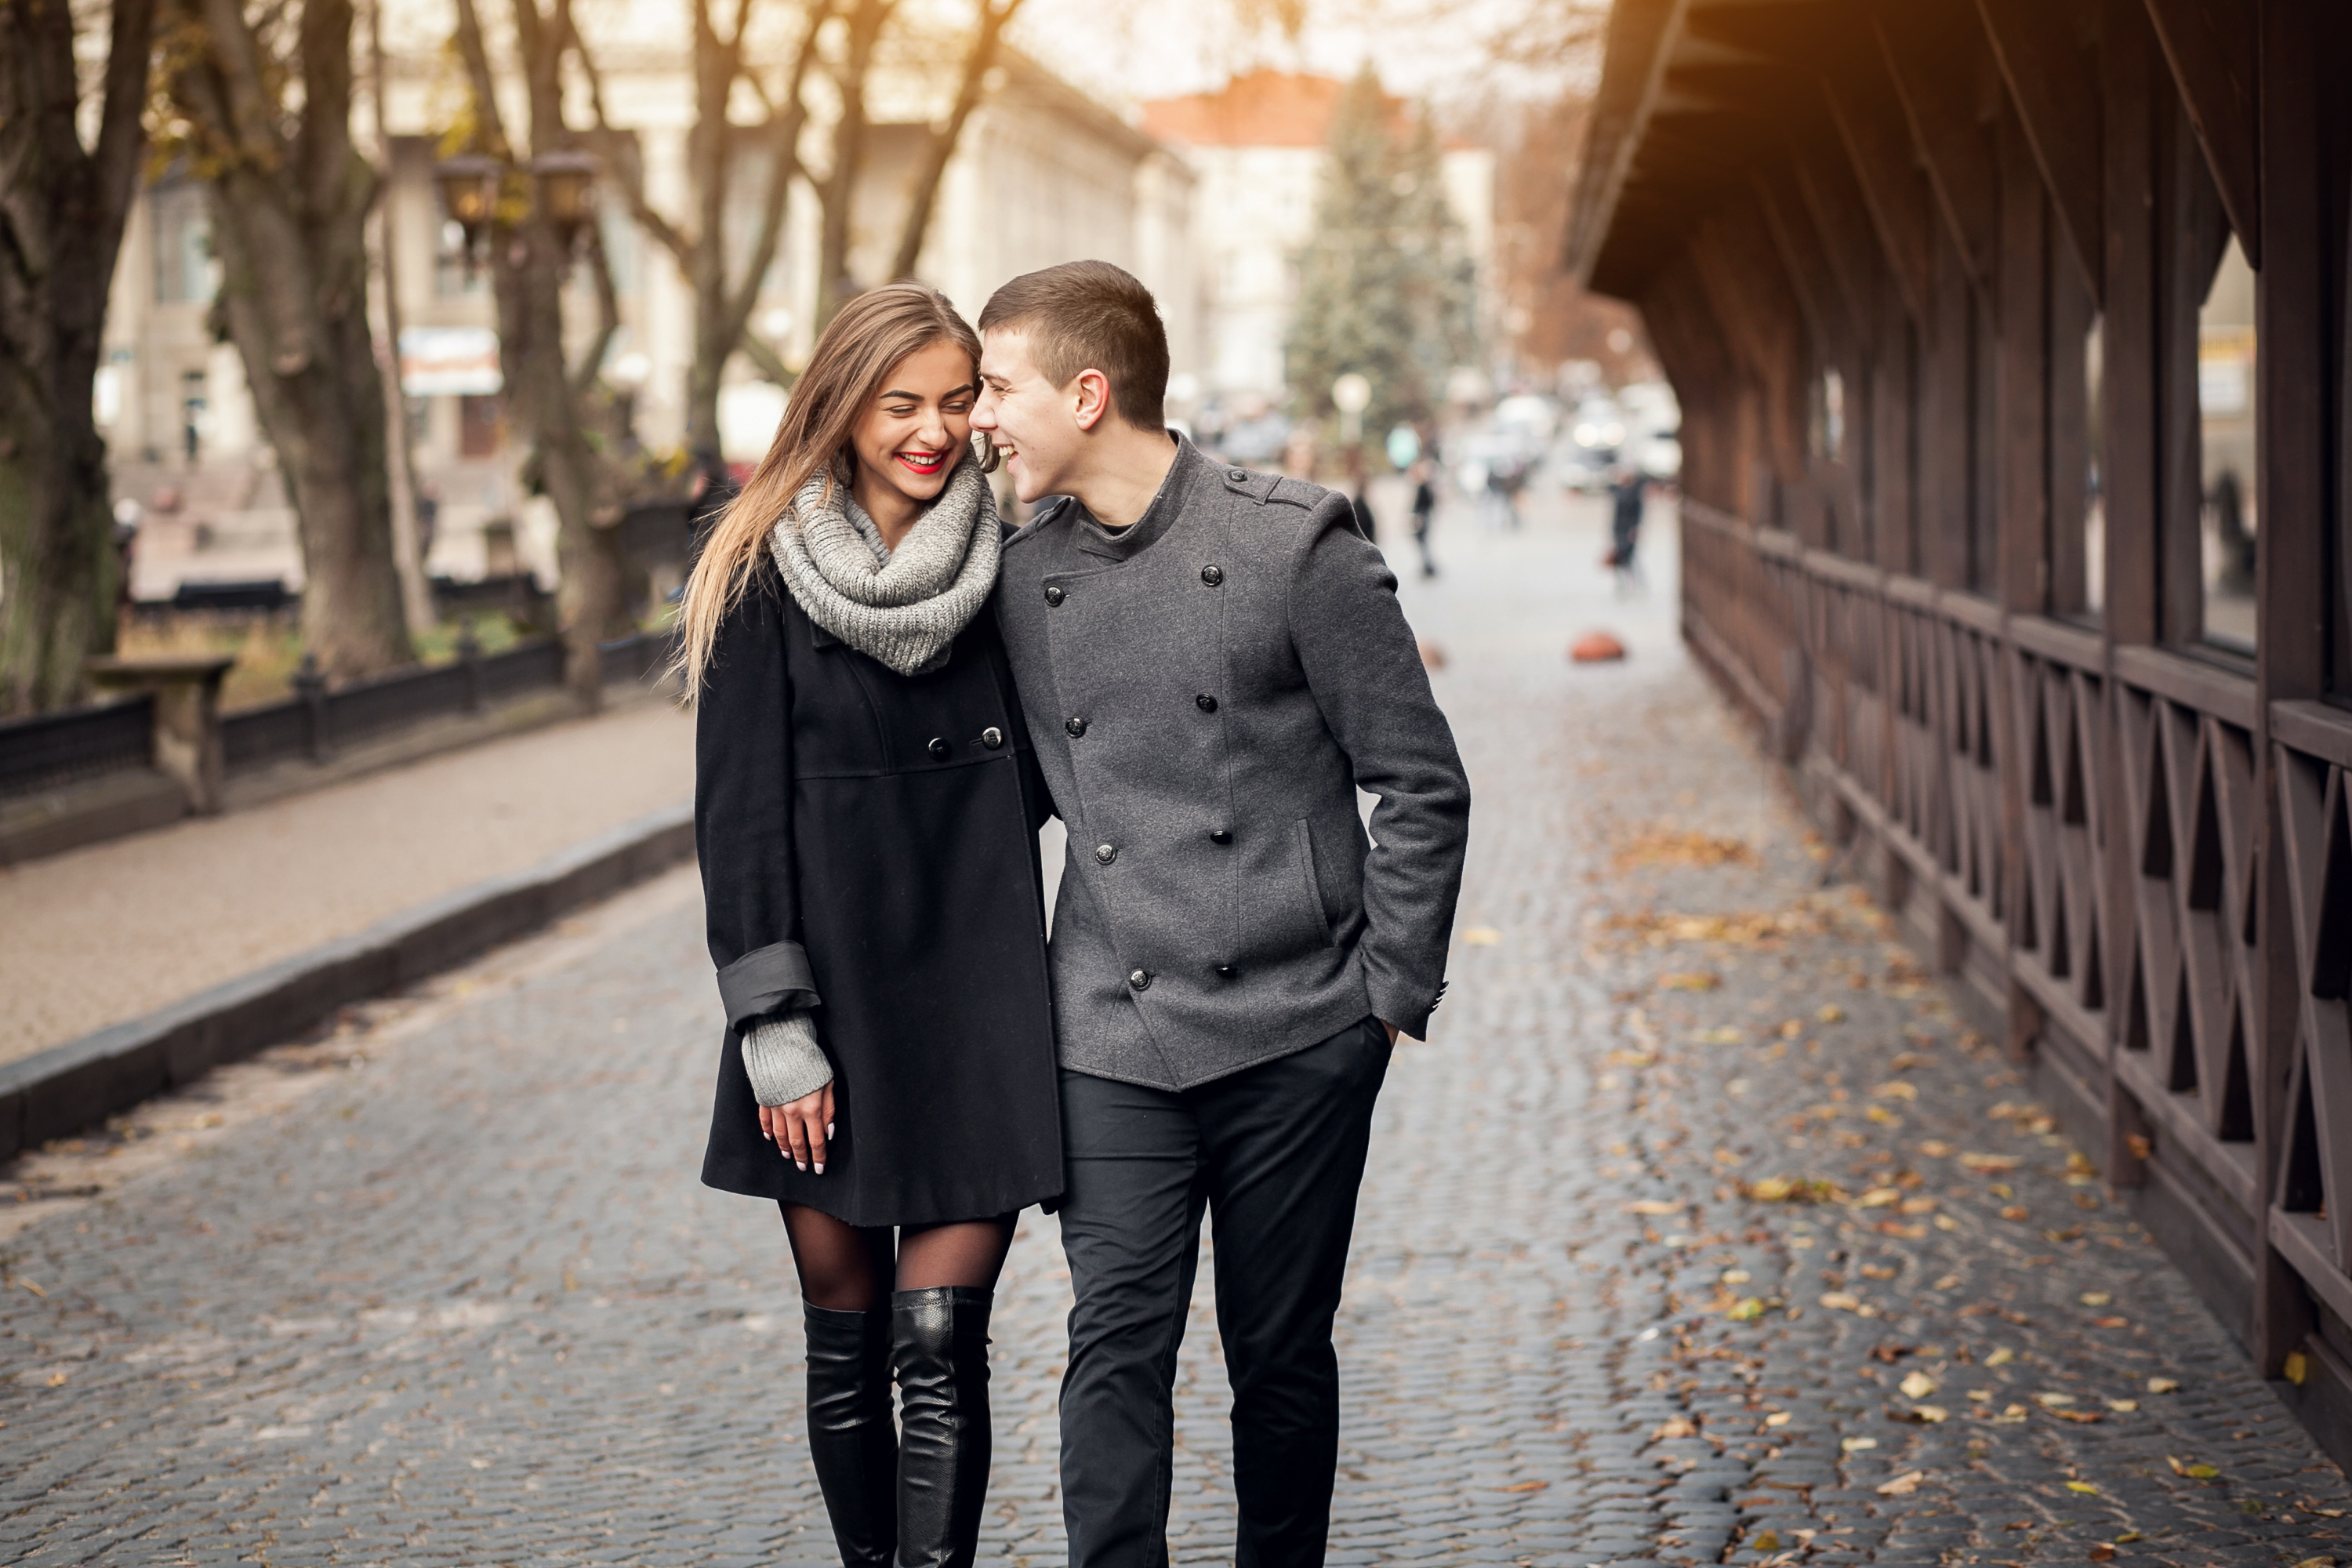 taking a walk can help couples relax